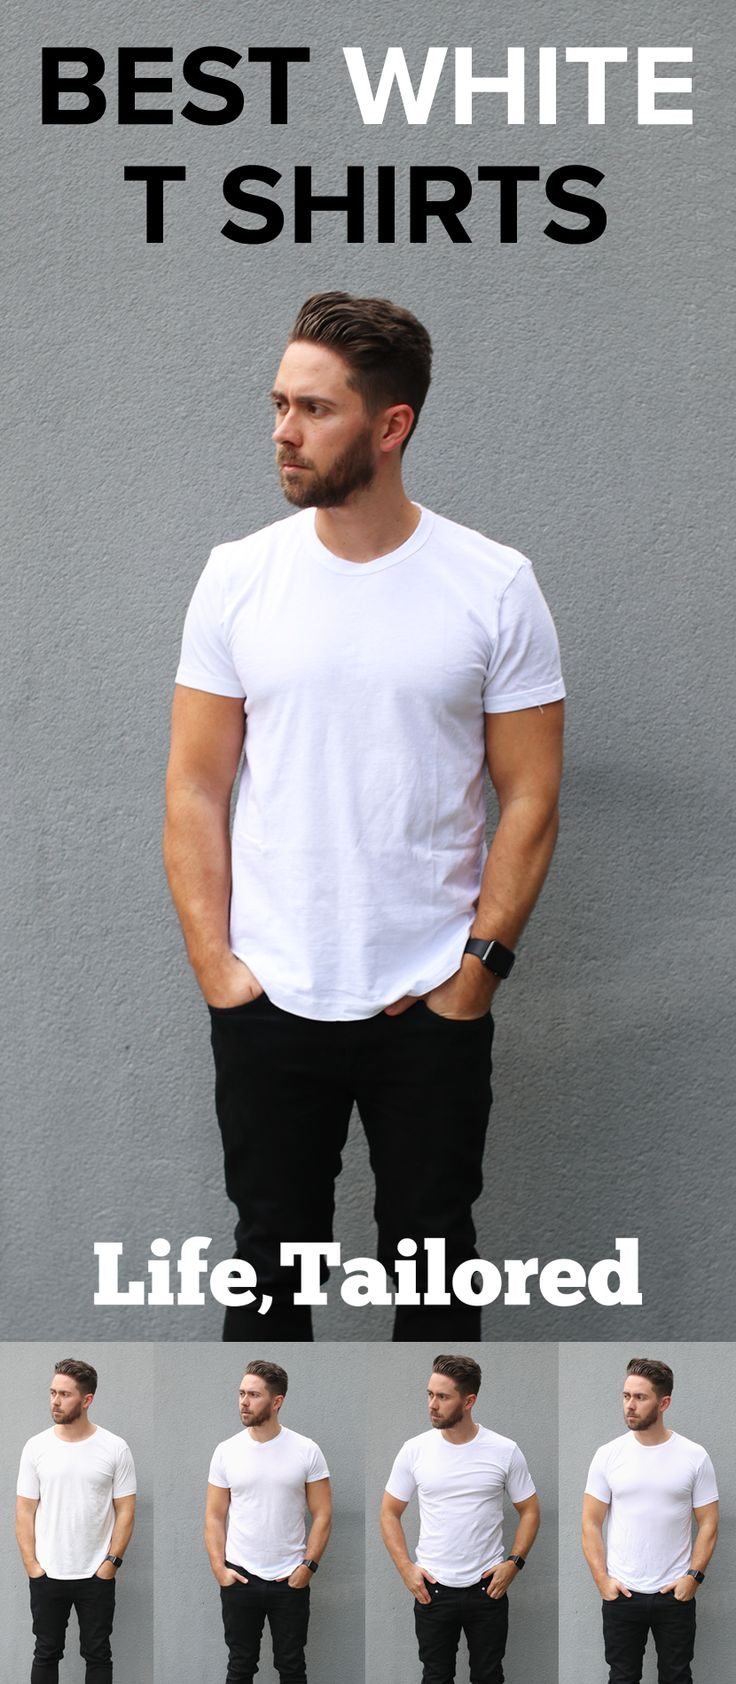 Best White T Shirt Men: I Tried Out 10 Different W T-Shirts And Here Are The Absolute Best